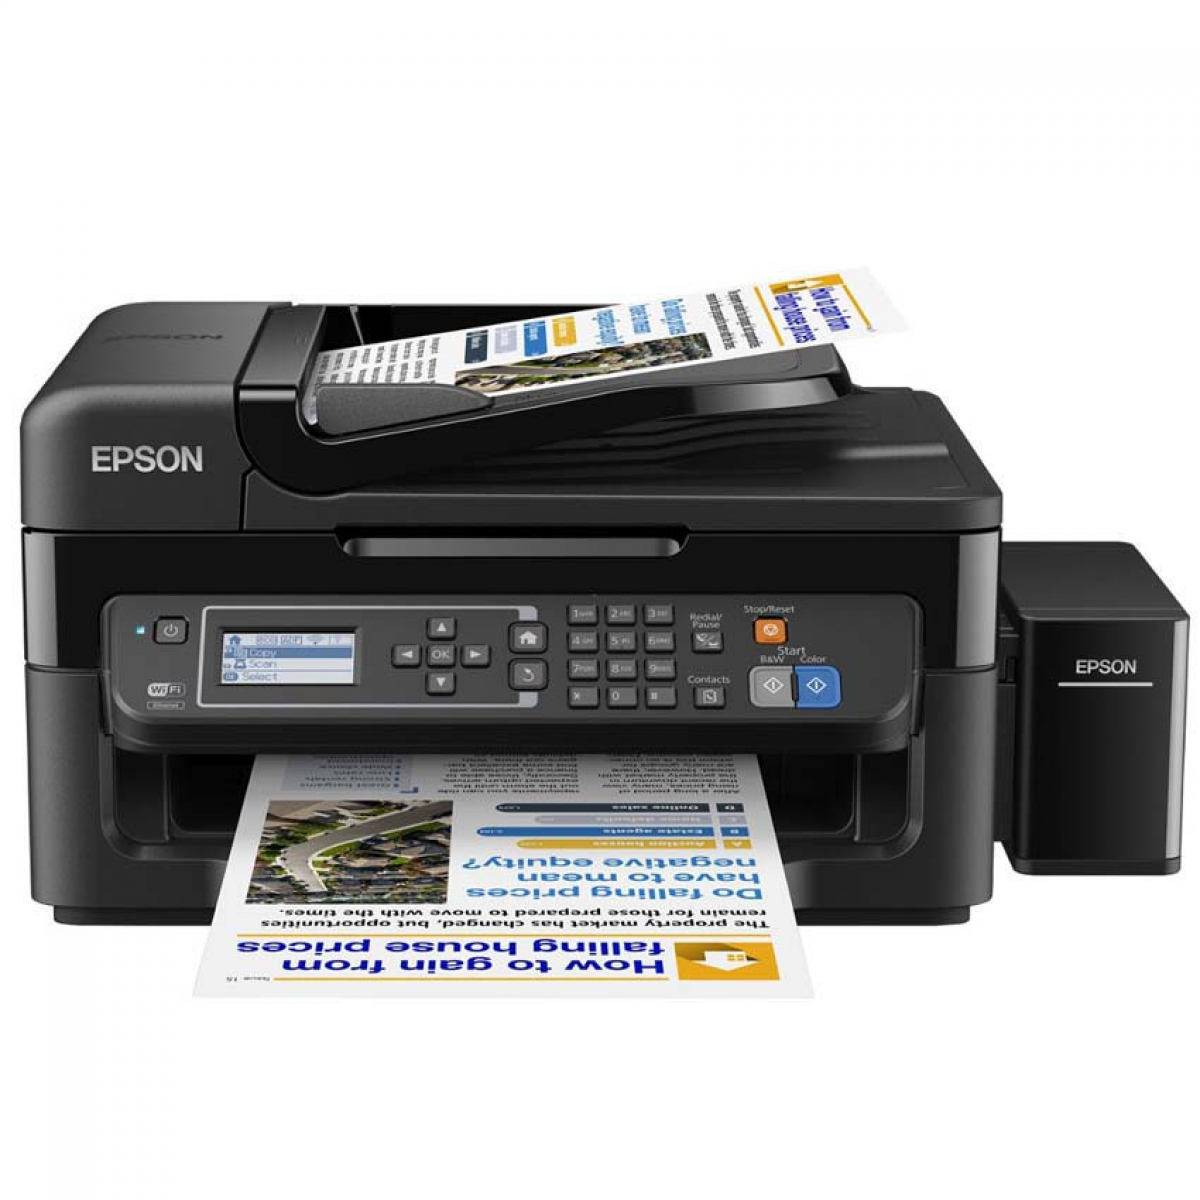 how to connect my printer epson to my wireless computer